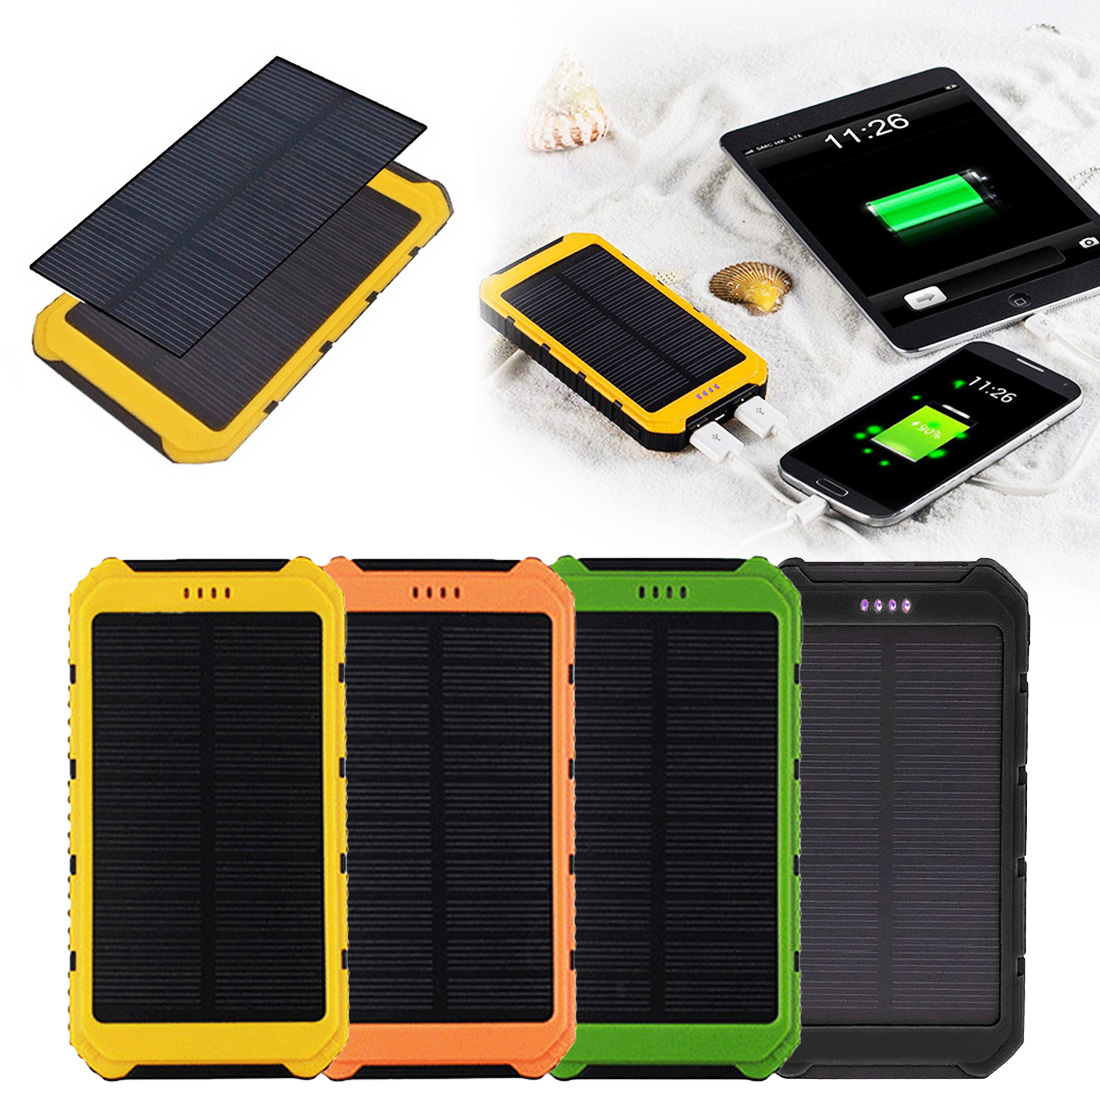 New large Capacity 20000mAh Solar Panel Sun power Battery Power Bank Charger Universal Portable Solar Mobile Phone Power Charger